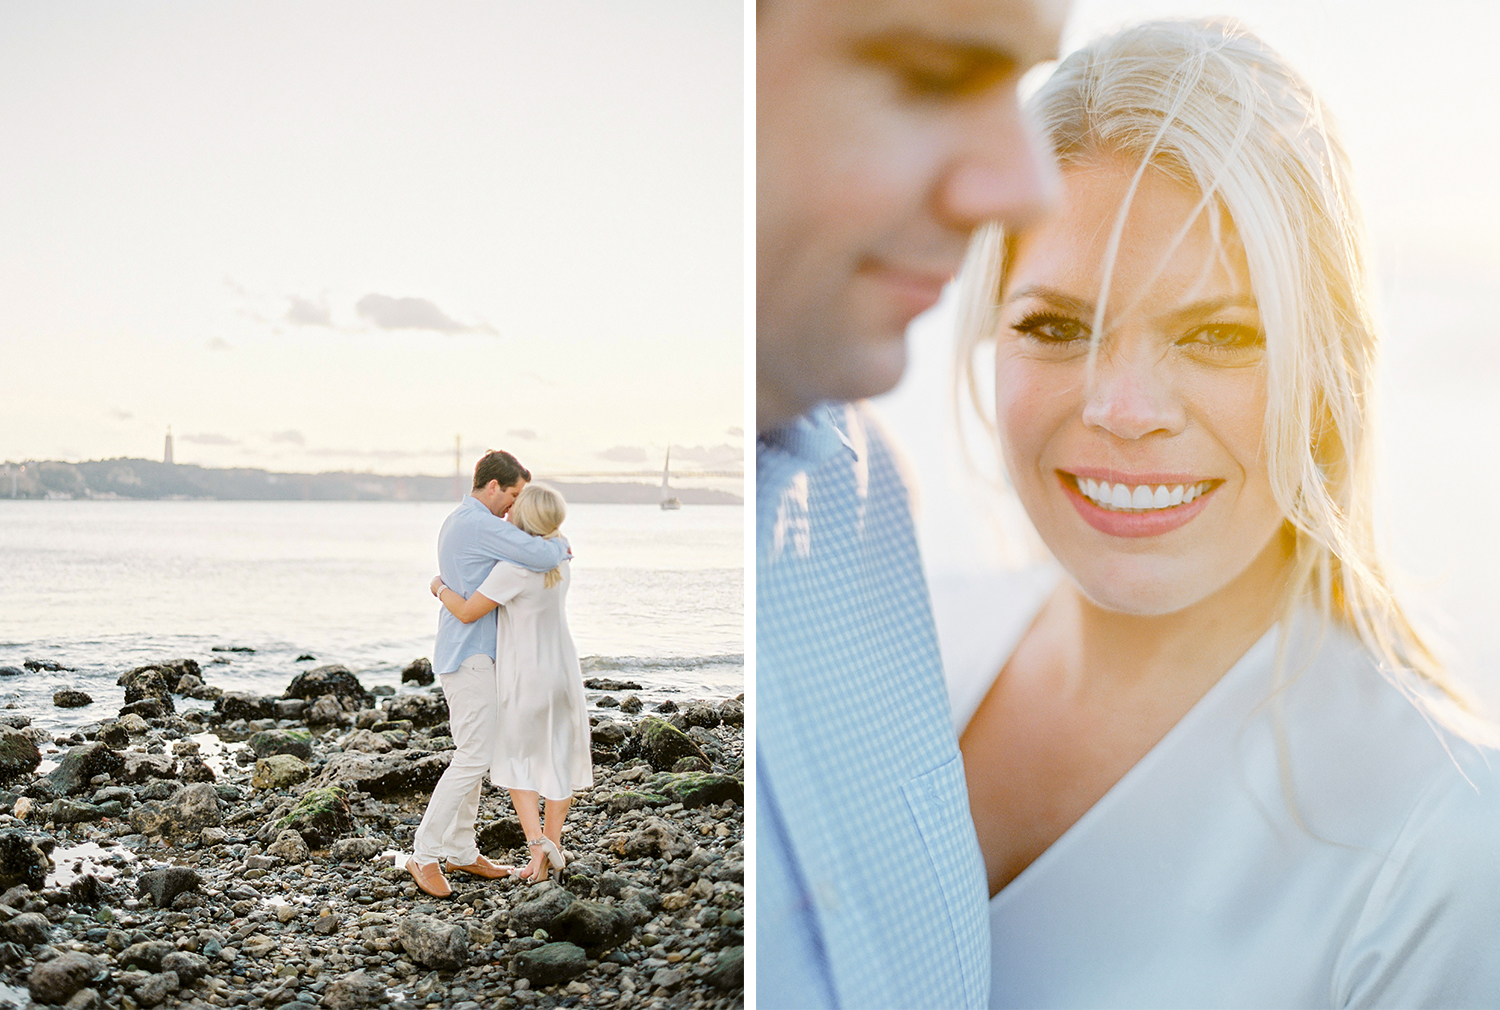 Engagement session by the river at sunset